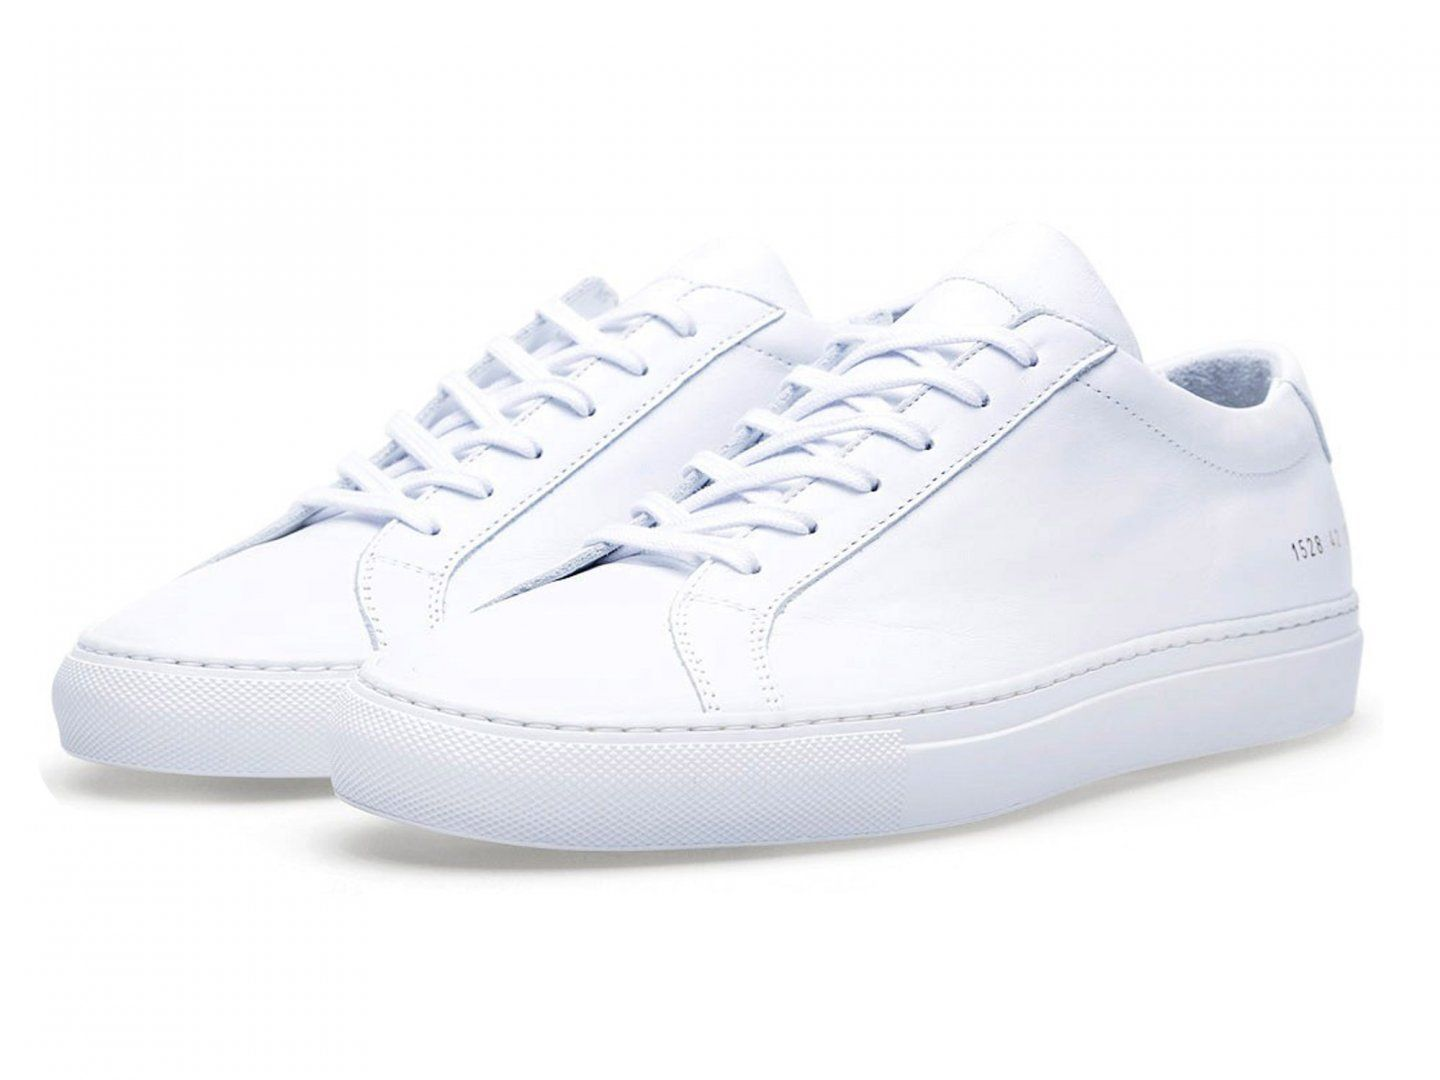 lacoste shoes store near me numbersusa petition